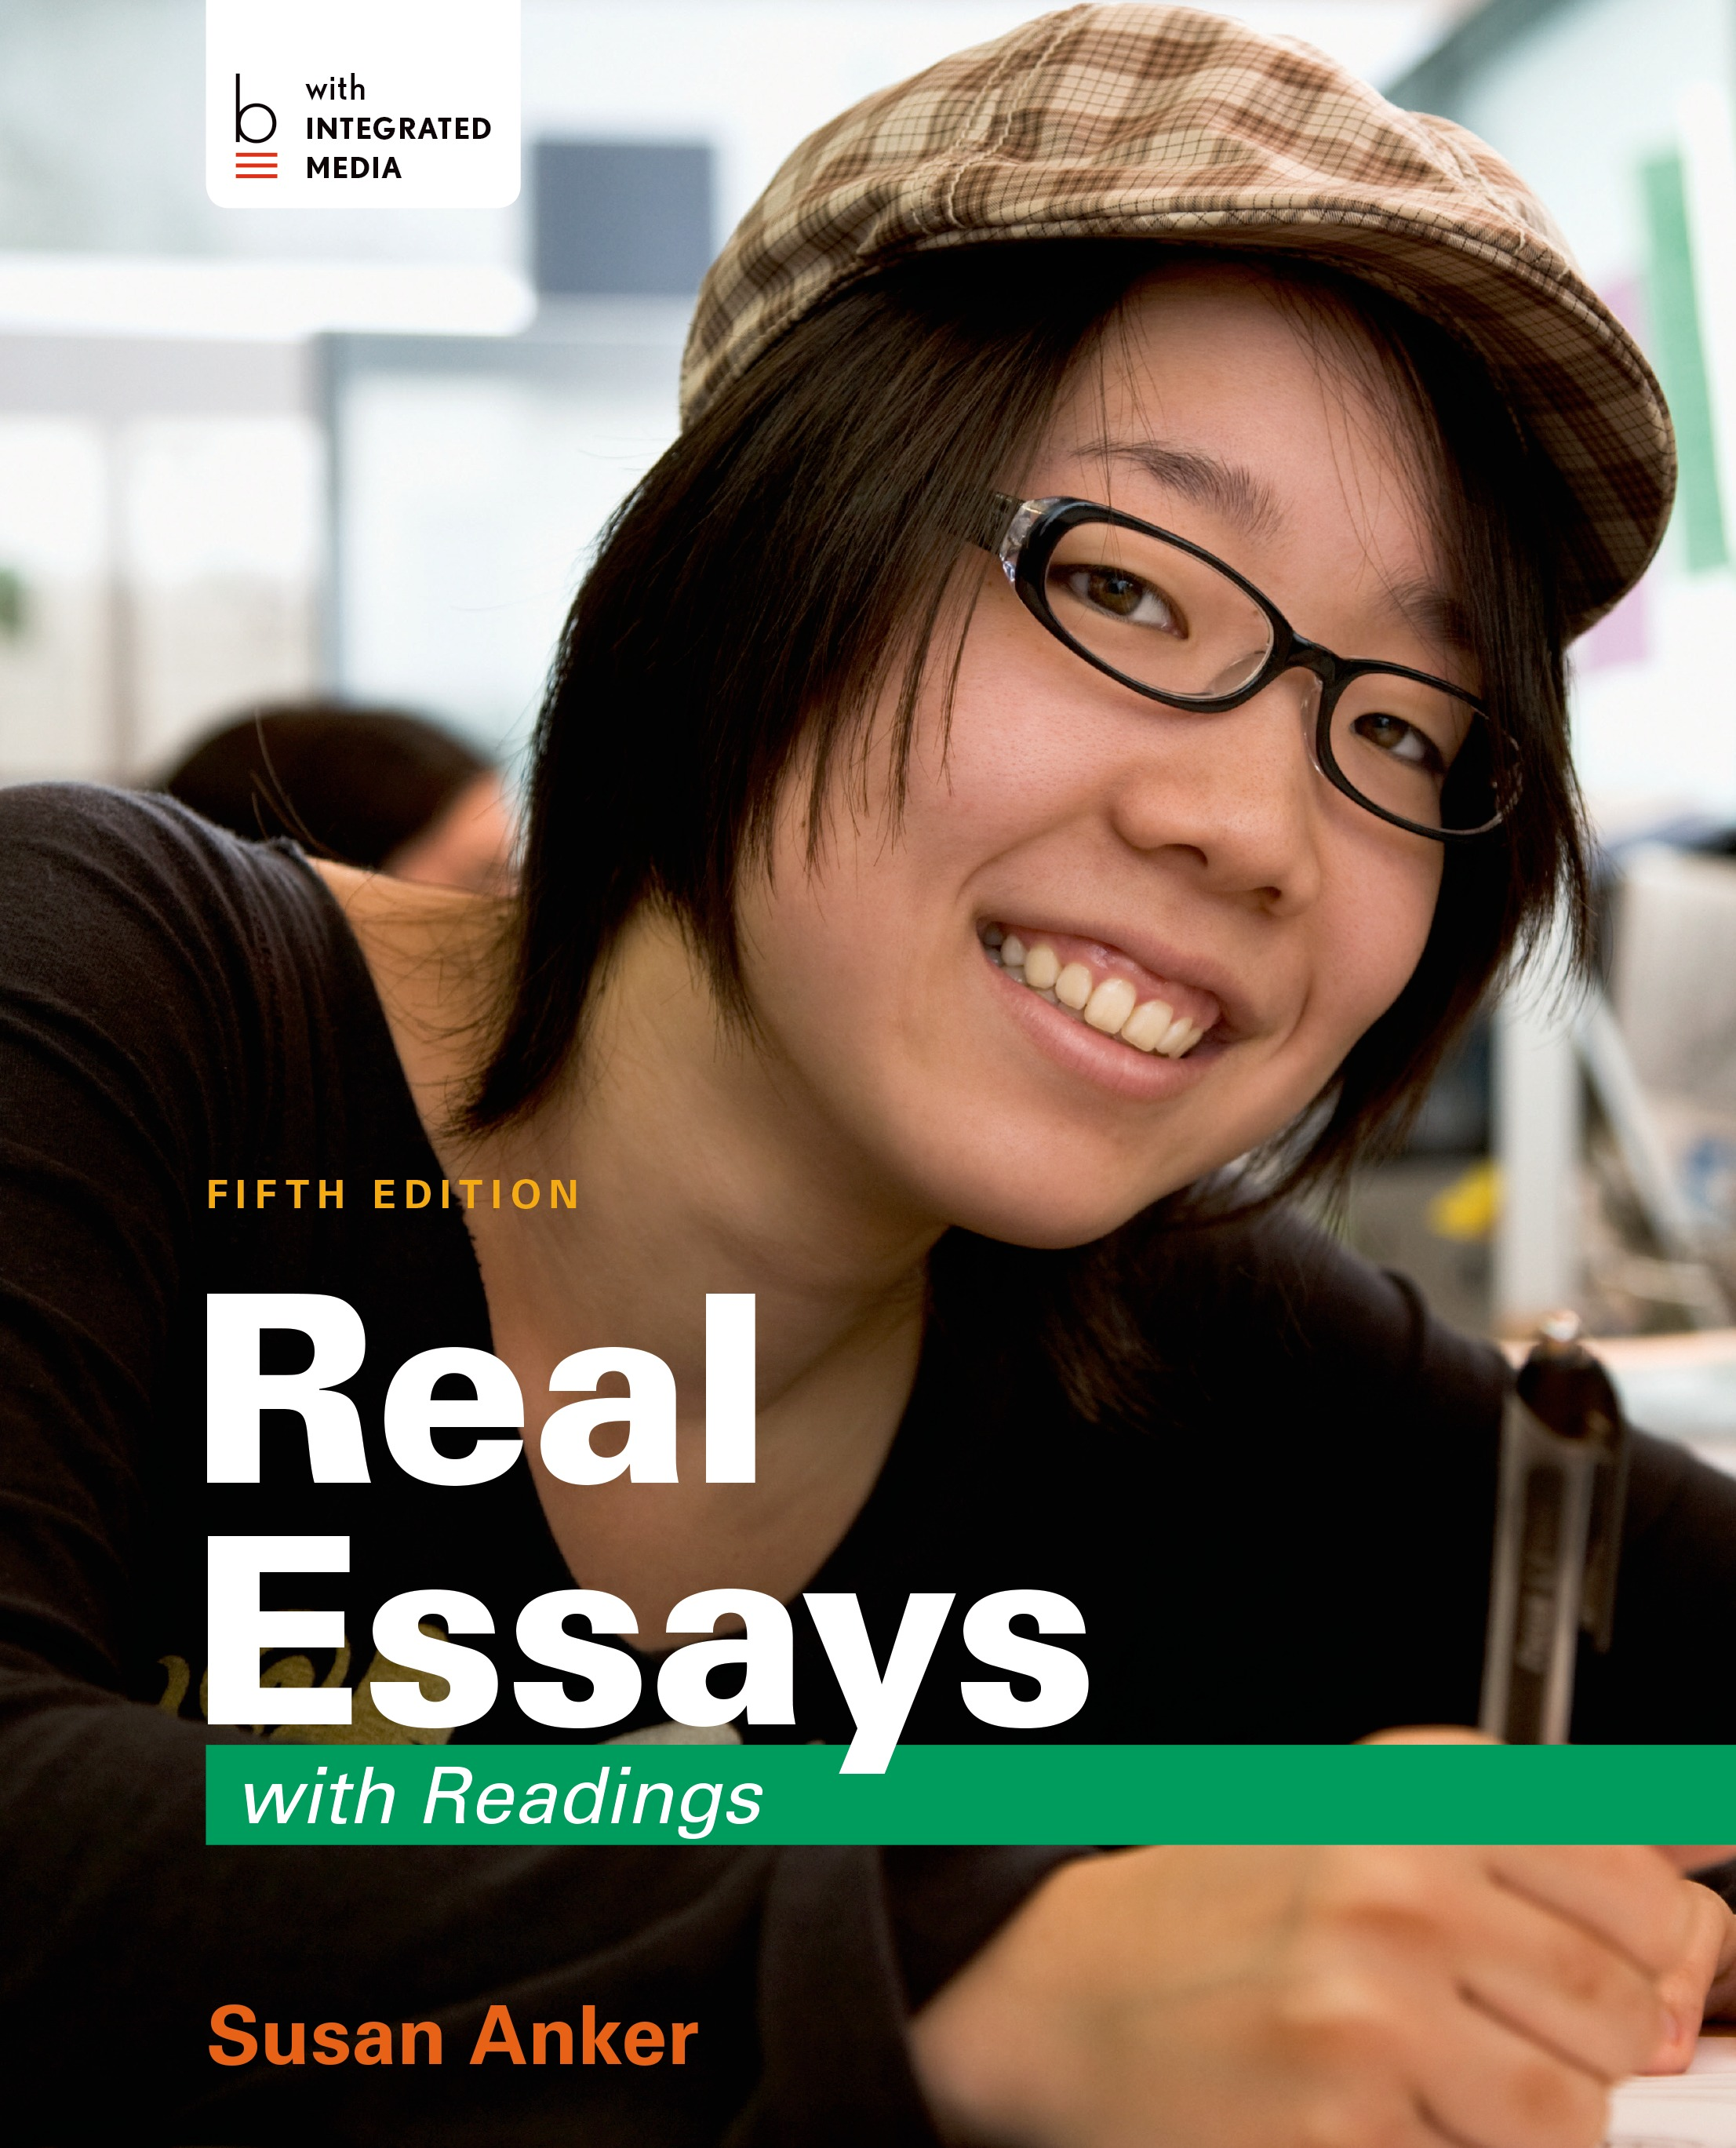 real essays readings macmillan learning  image